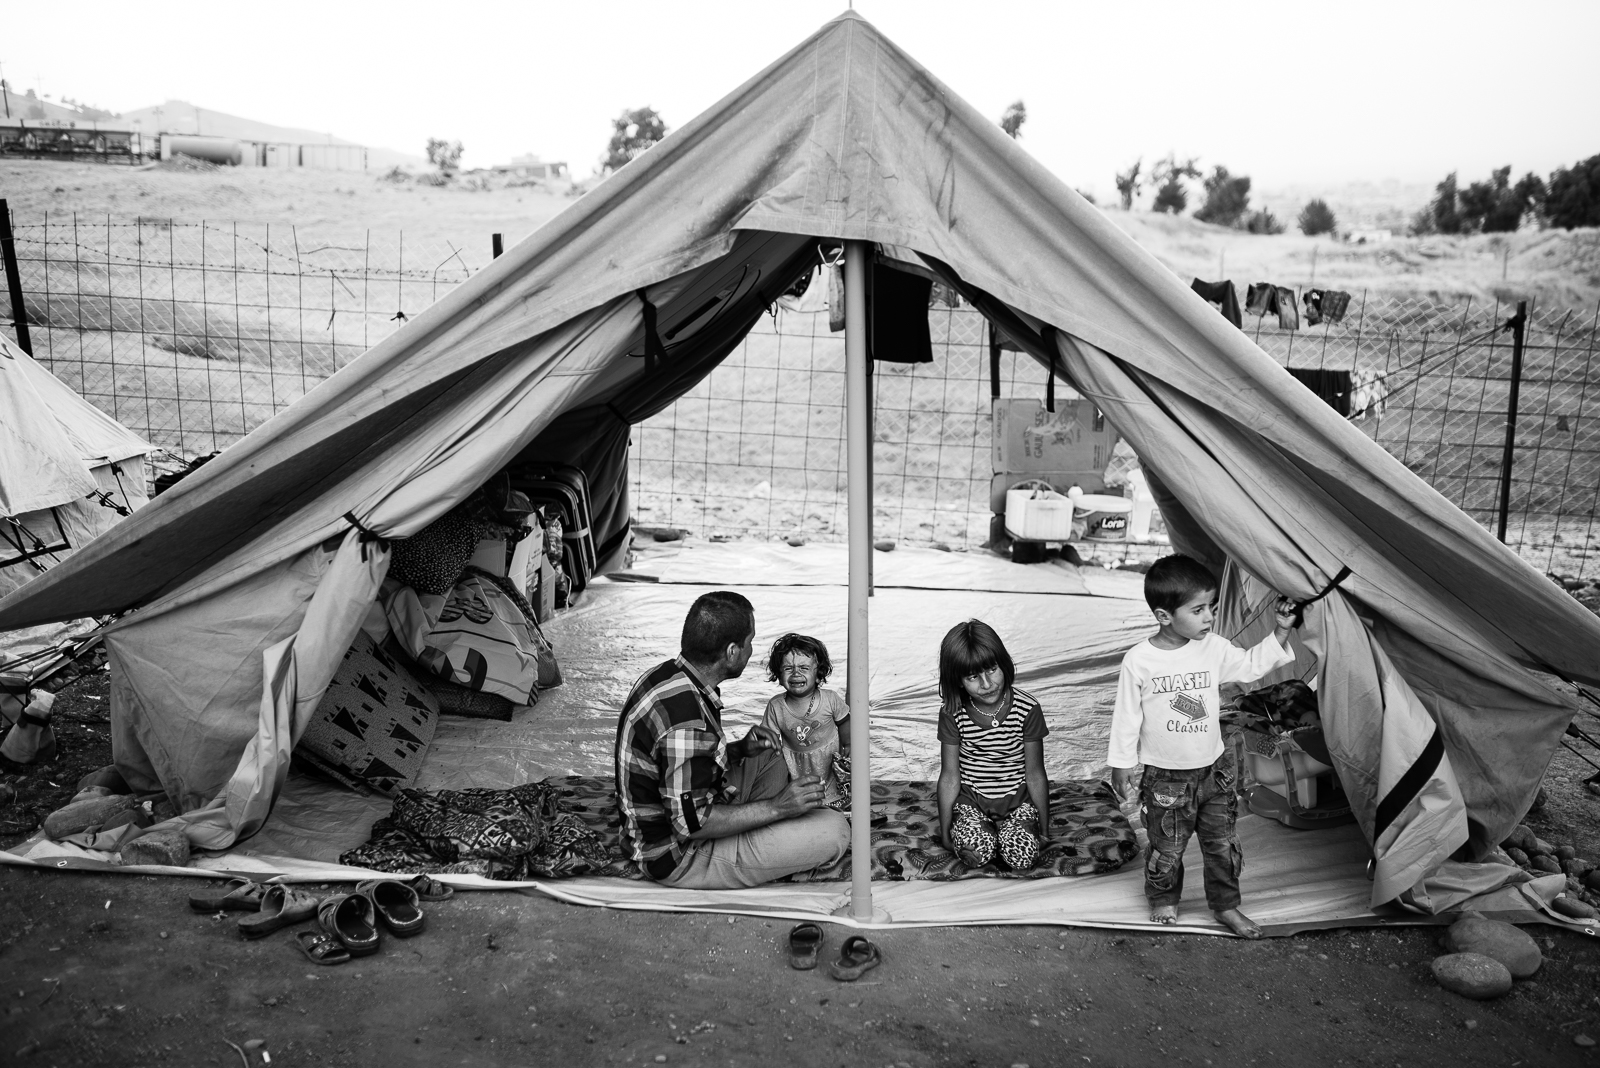 Life in the Zakho's refugees camp